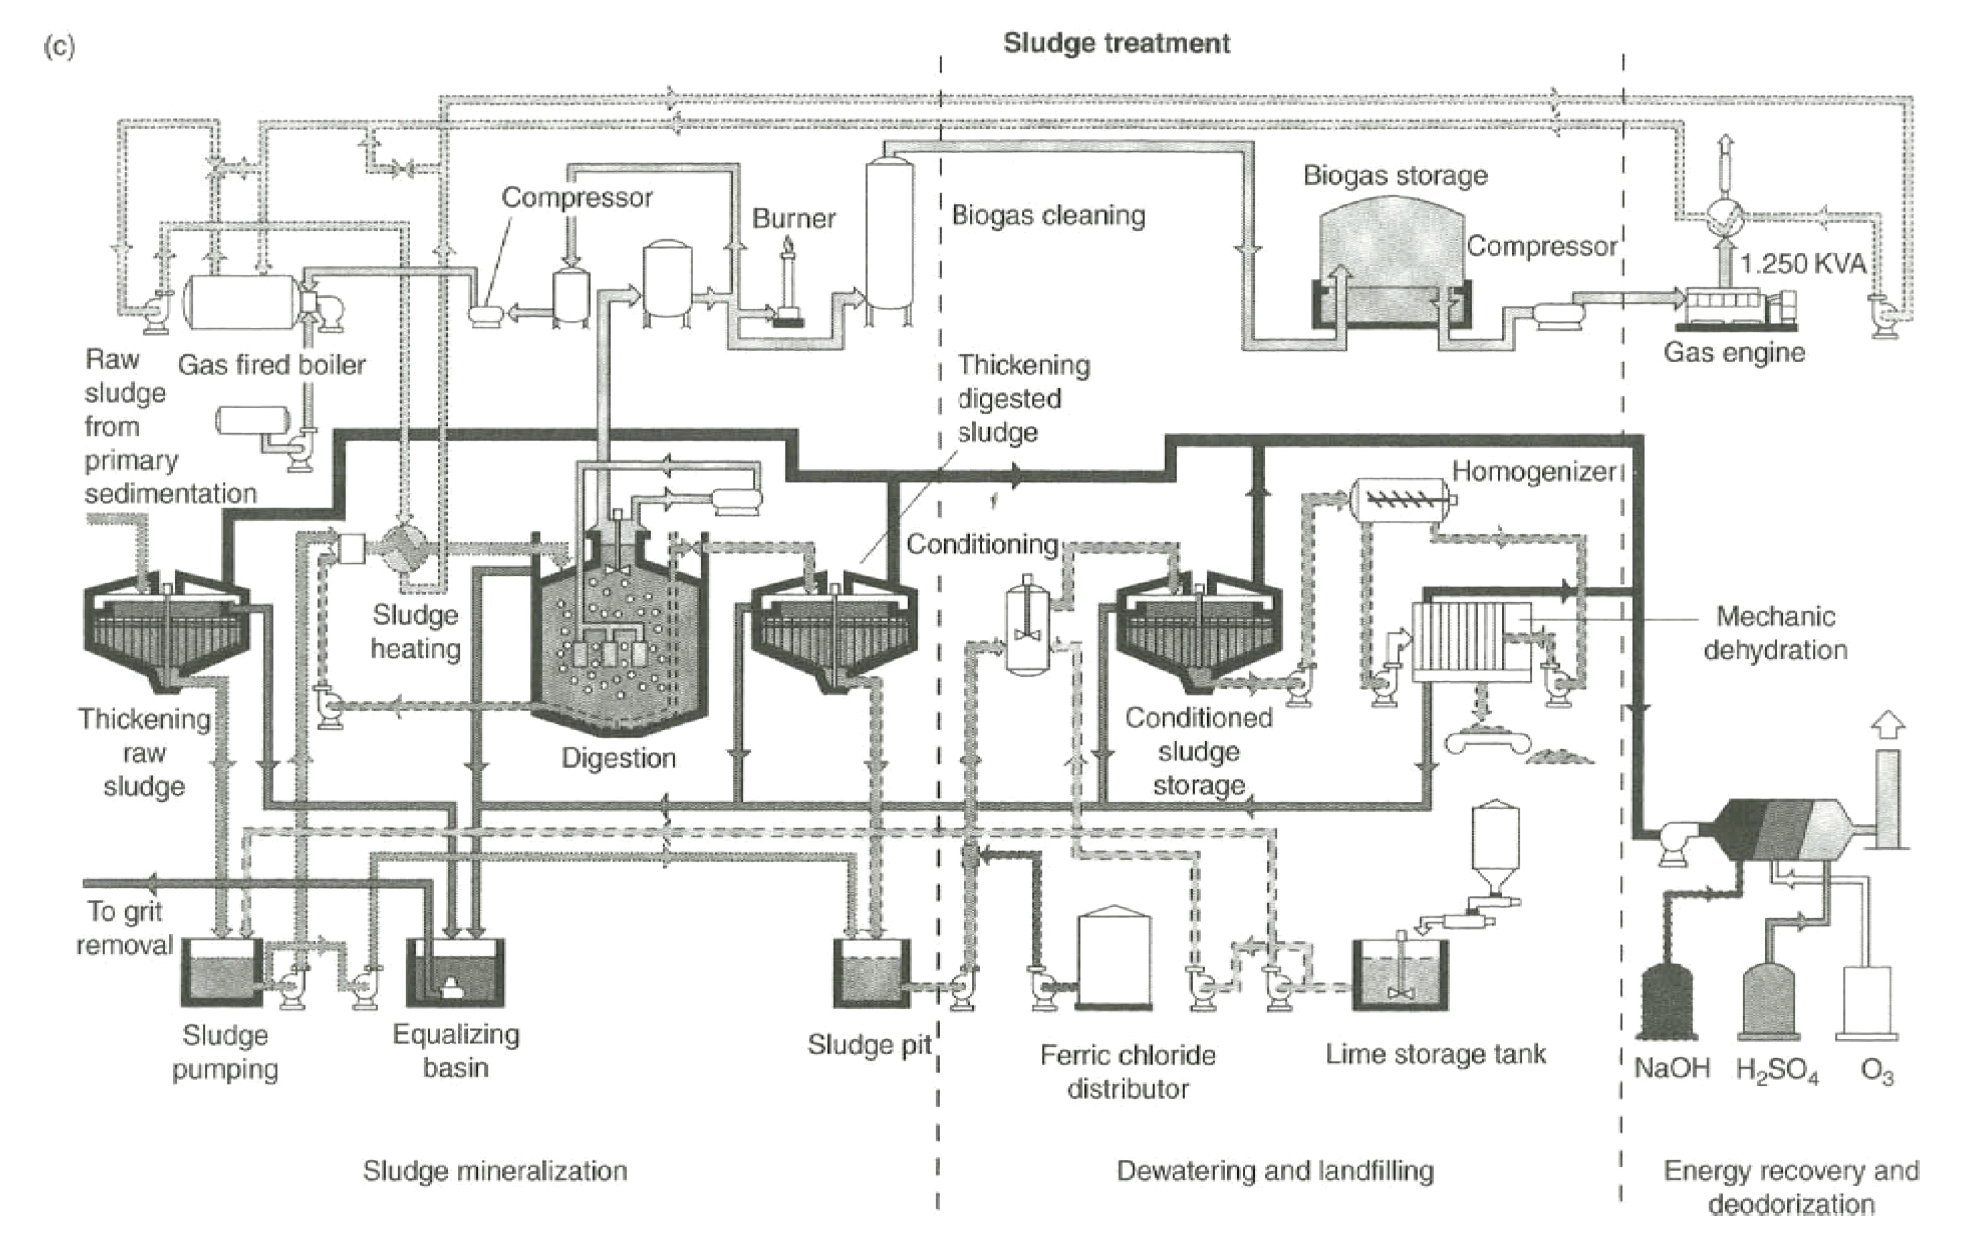 Activated Carbon Process And Instrumentation Diagram